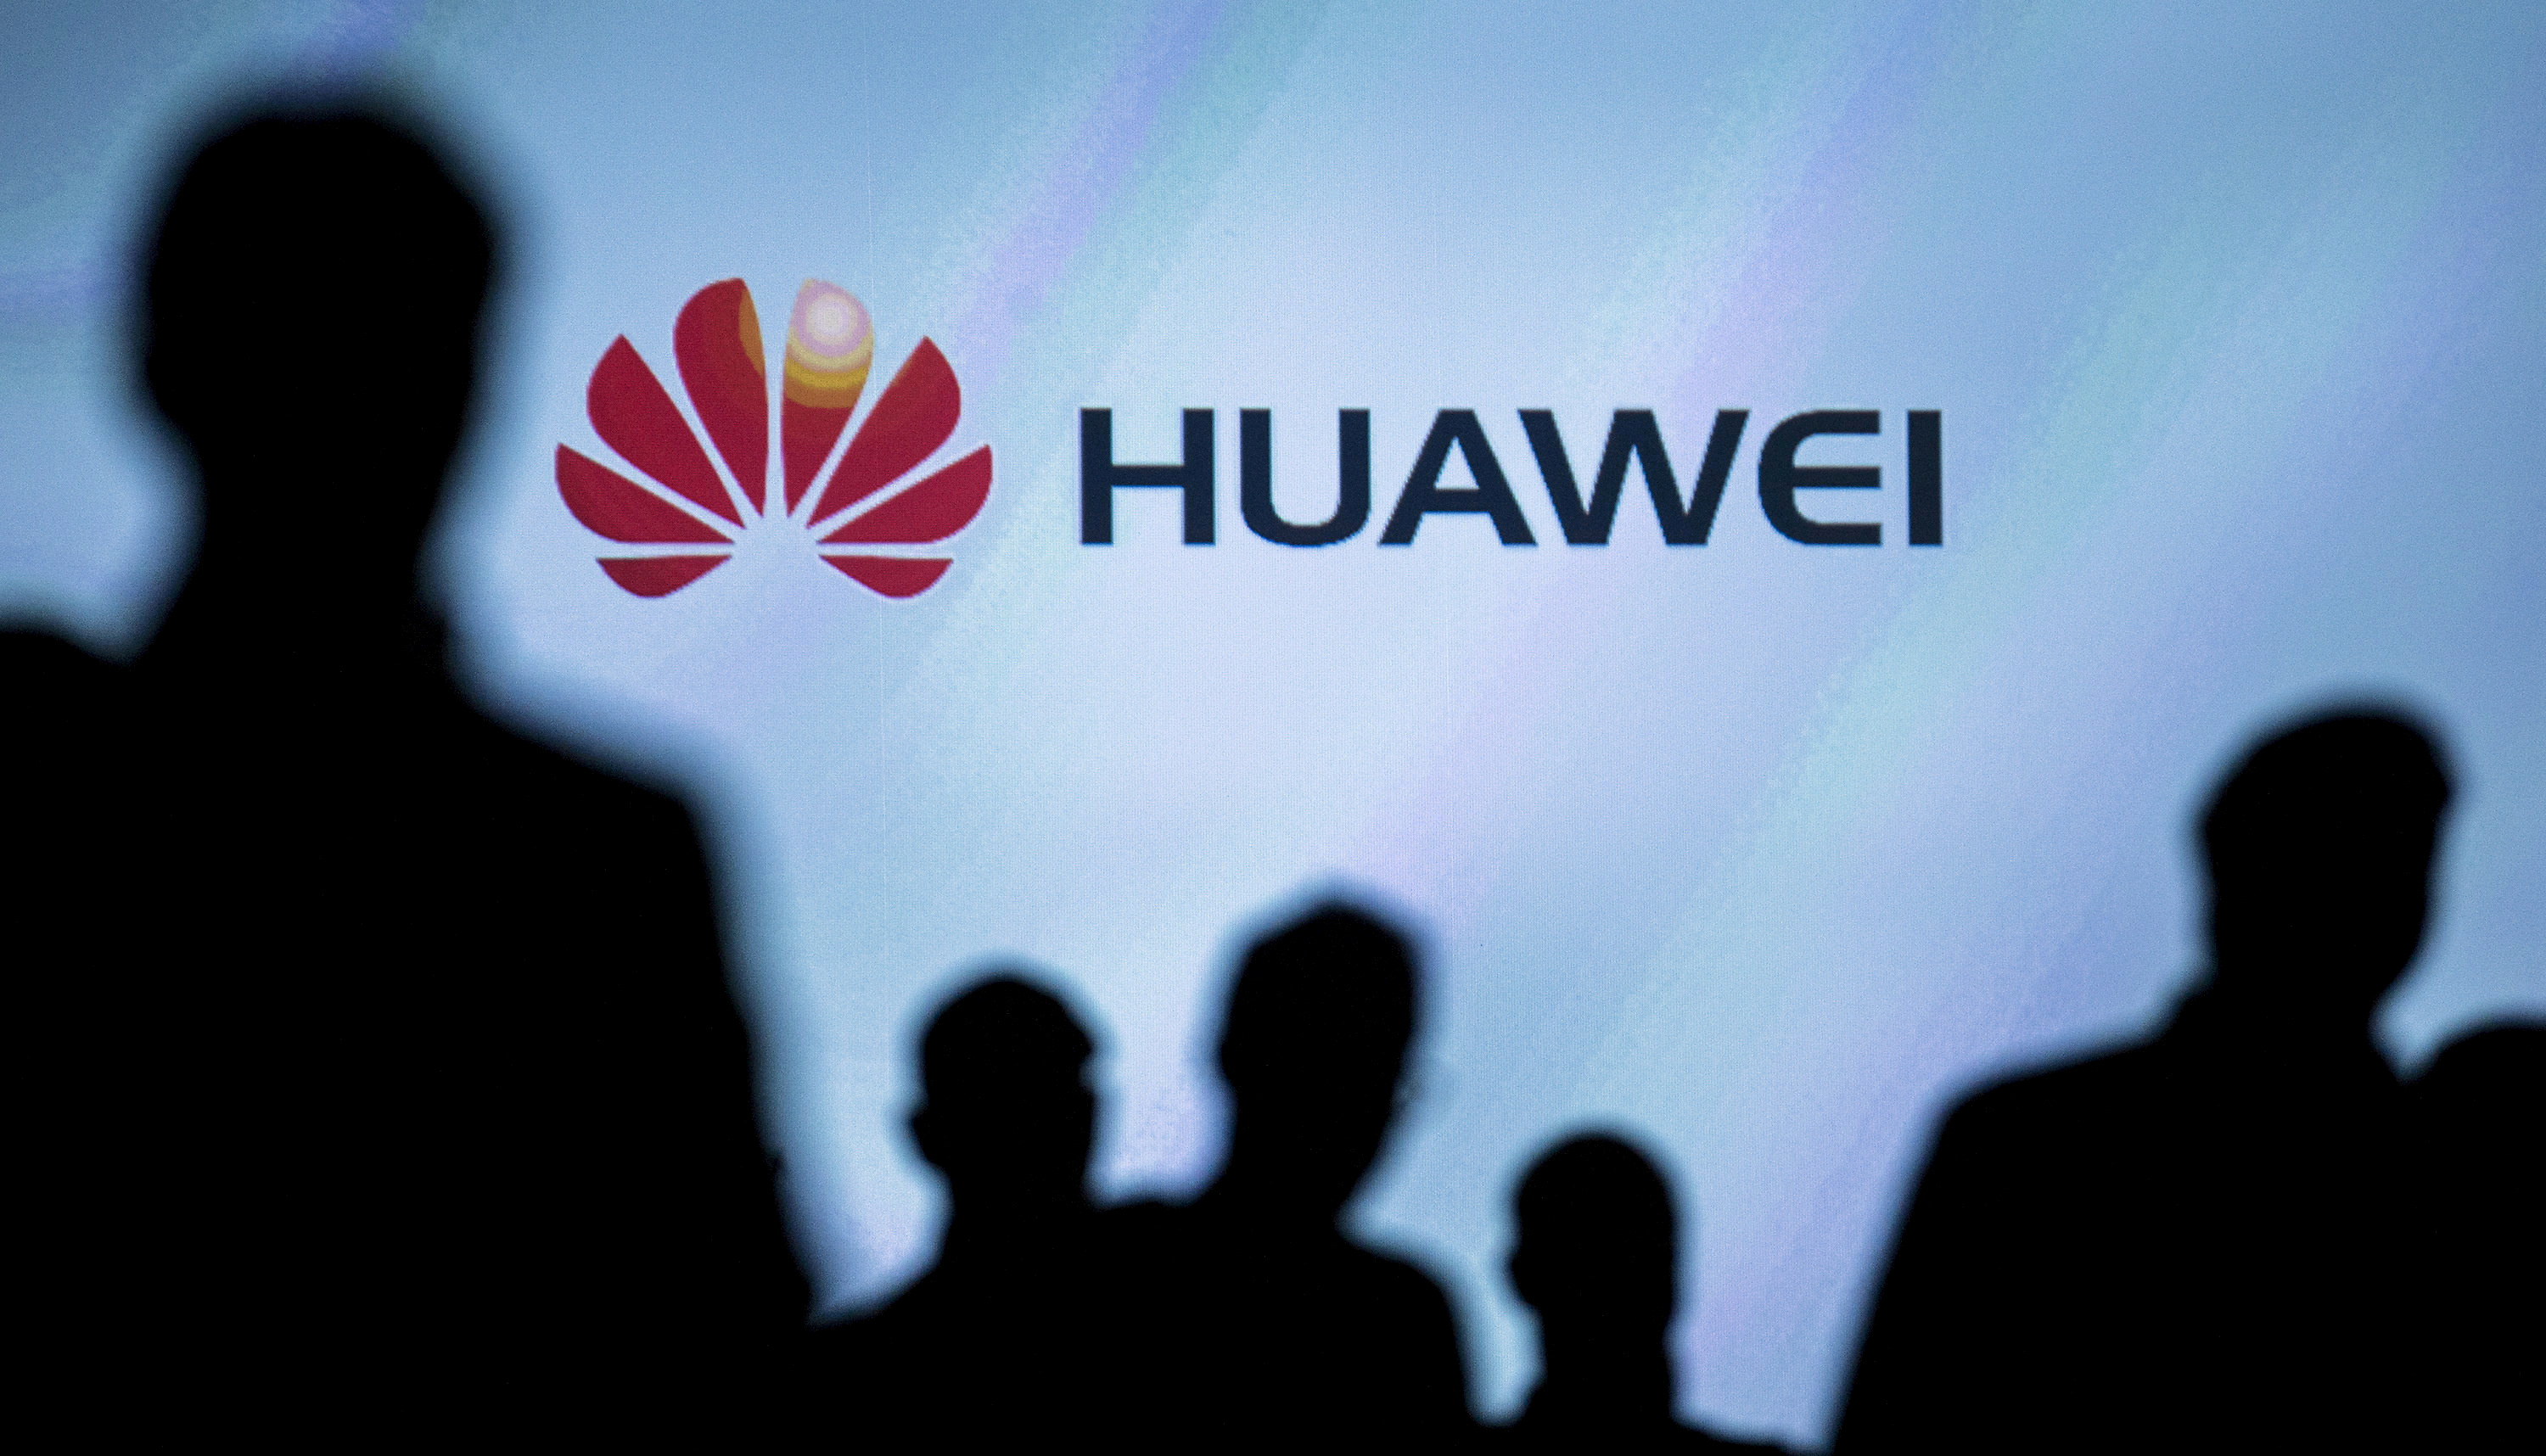 nationalinterest.org - Huawei Is the Doorway to China's Police State